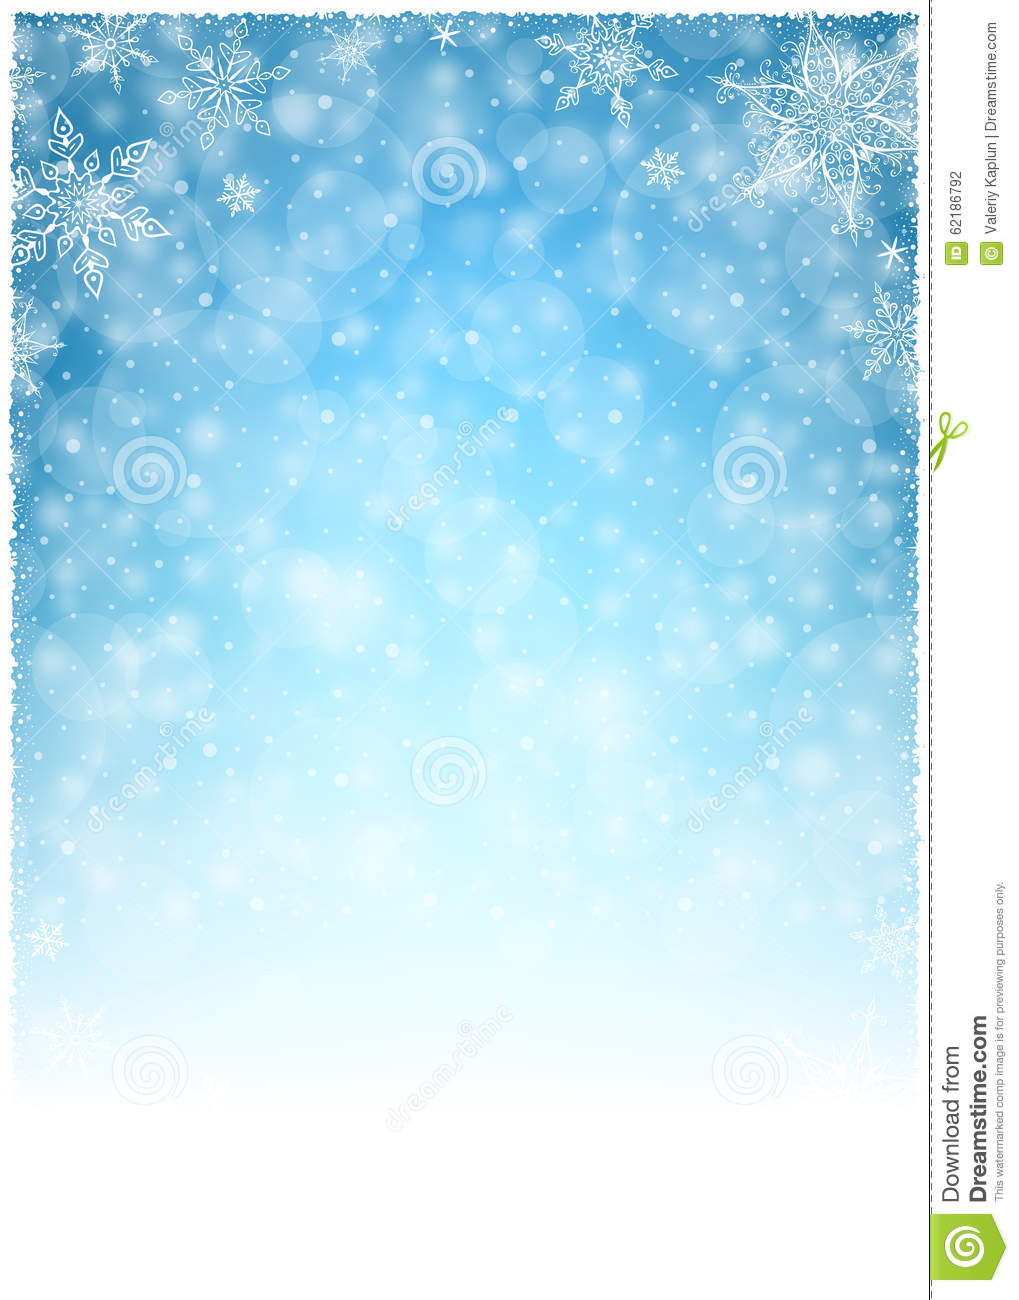 christmas winter frame illustration christmas white blue empty background portrait stock vector illustration of banner poster 62186792 dreamstime com